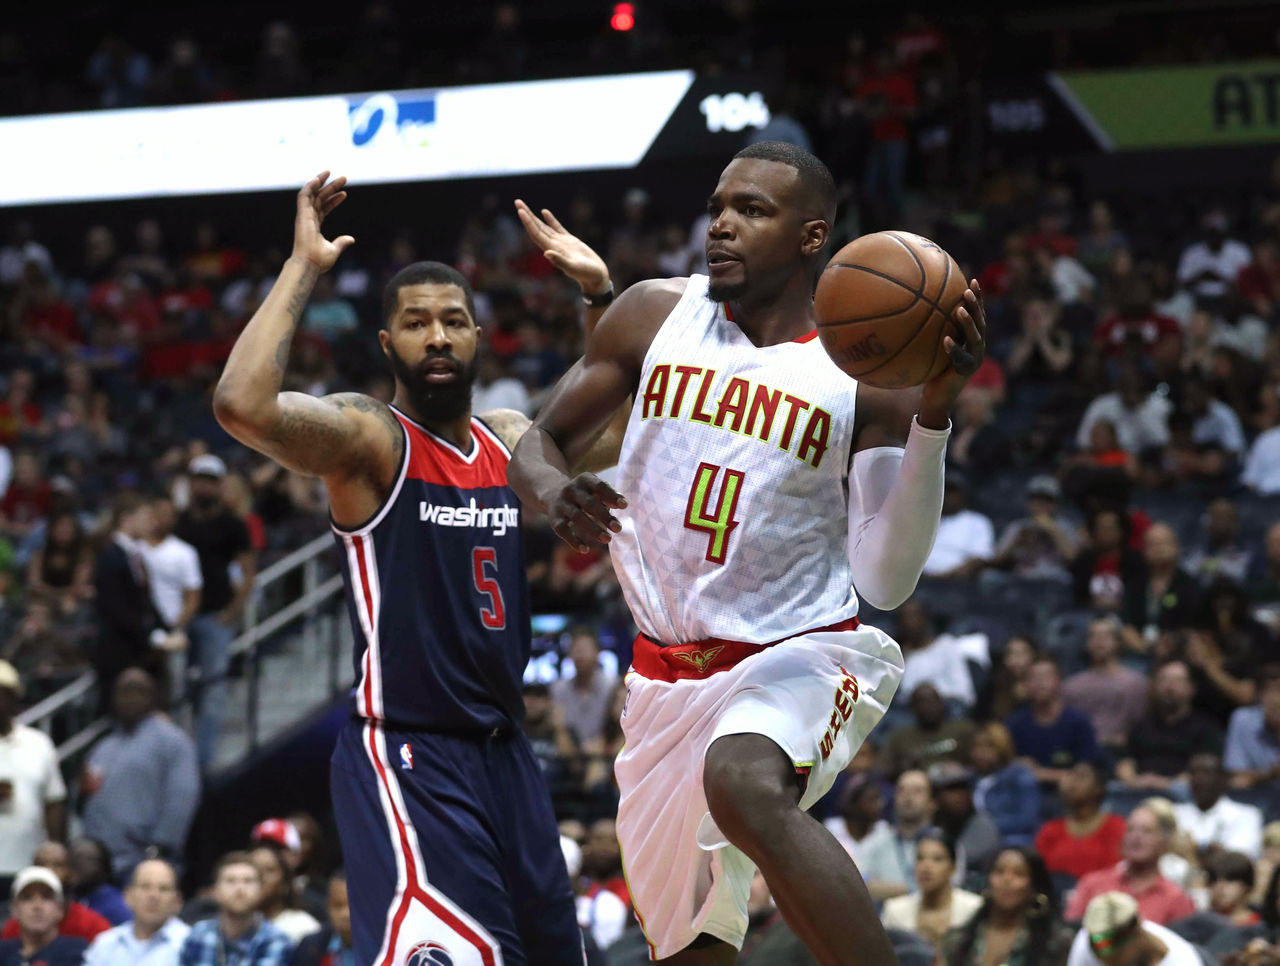 Cropped 2017 04 29t032419z 1004053141 nocid rtrmadp 3 nba playoffs washington wizards at atlanta hawks